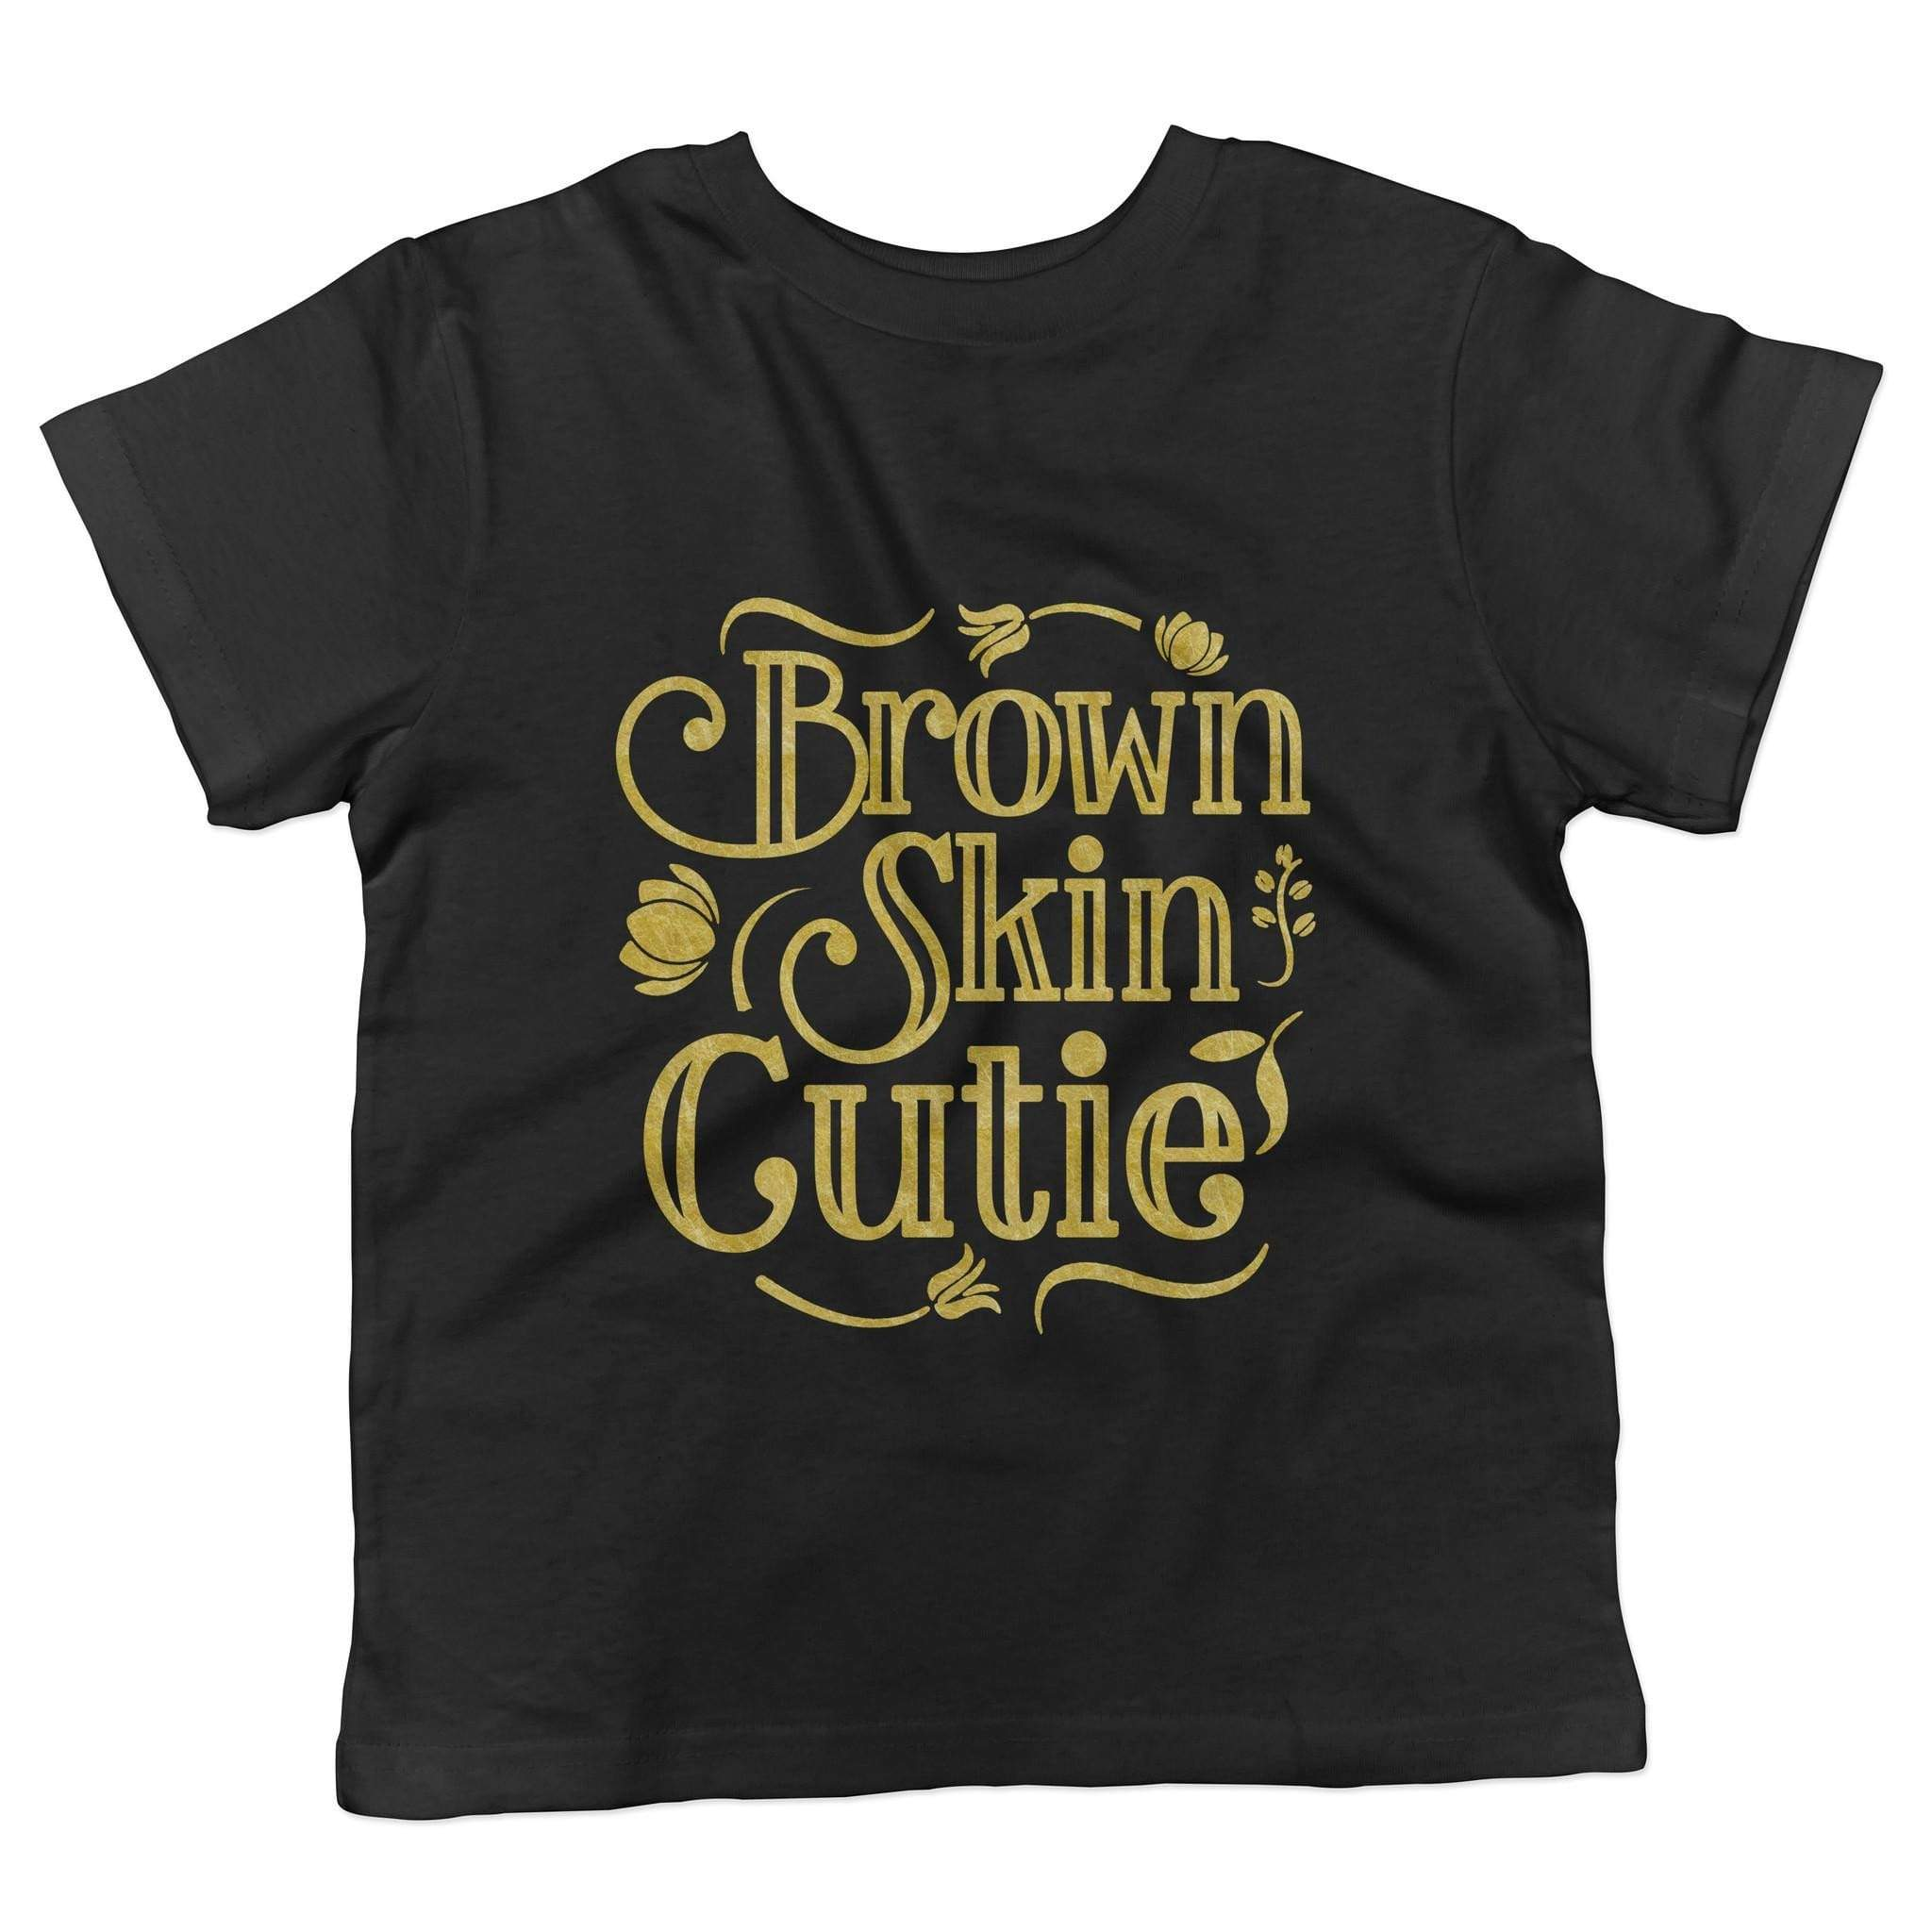 Brown Skin Cutie Youth Tee - Izzy & Liv - kid tee